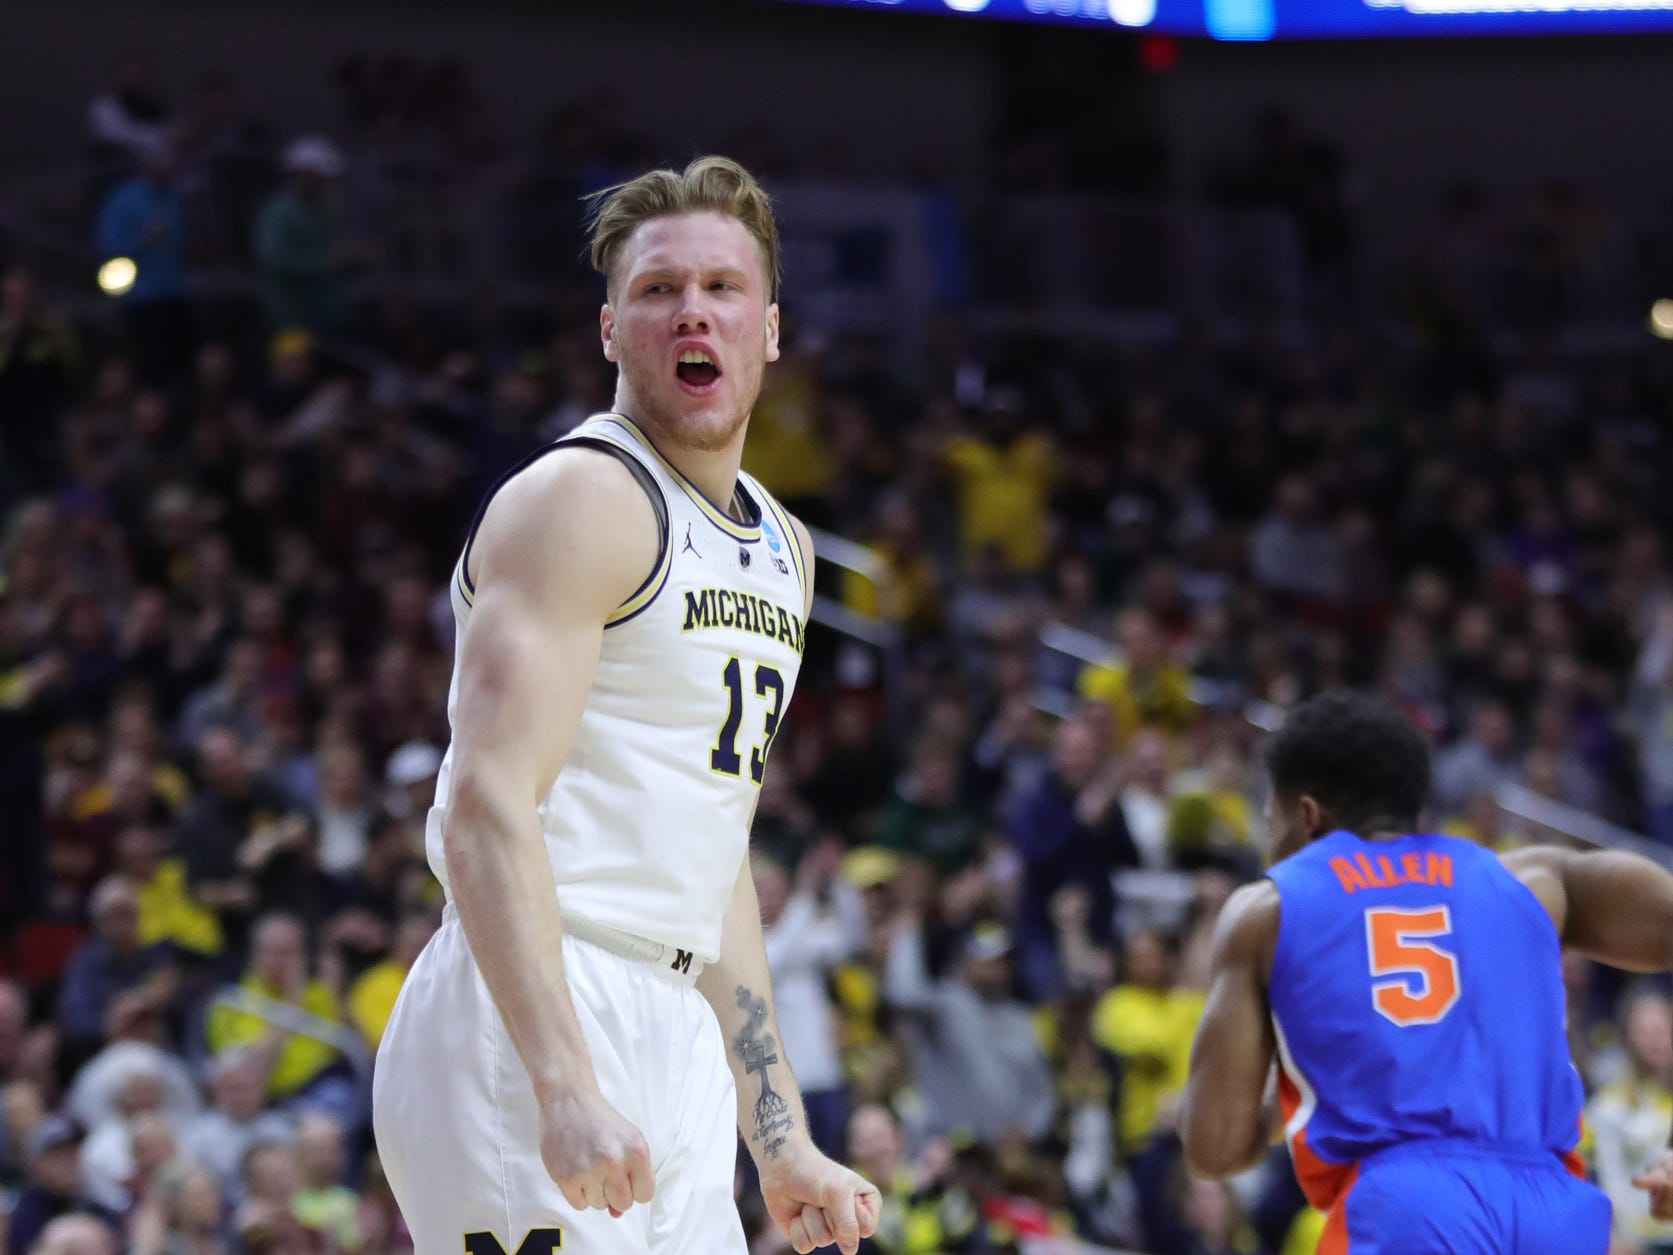 Michigan's Ignas Brazdeikis reacts after a dunk against Florida in the first half of their second round NCAA tournament game Saturday, March 23, 2019 at Wells Fargo Arena in Des Moines, Iowa.